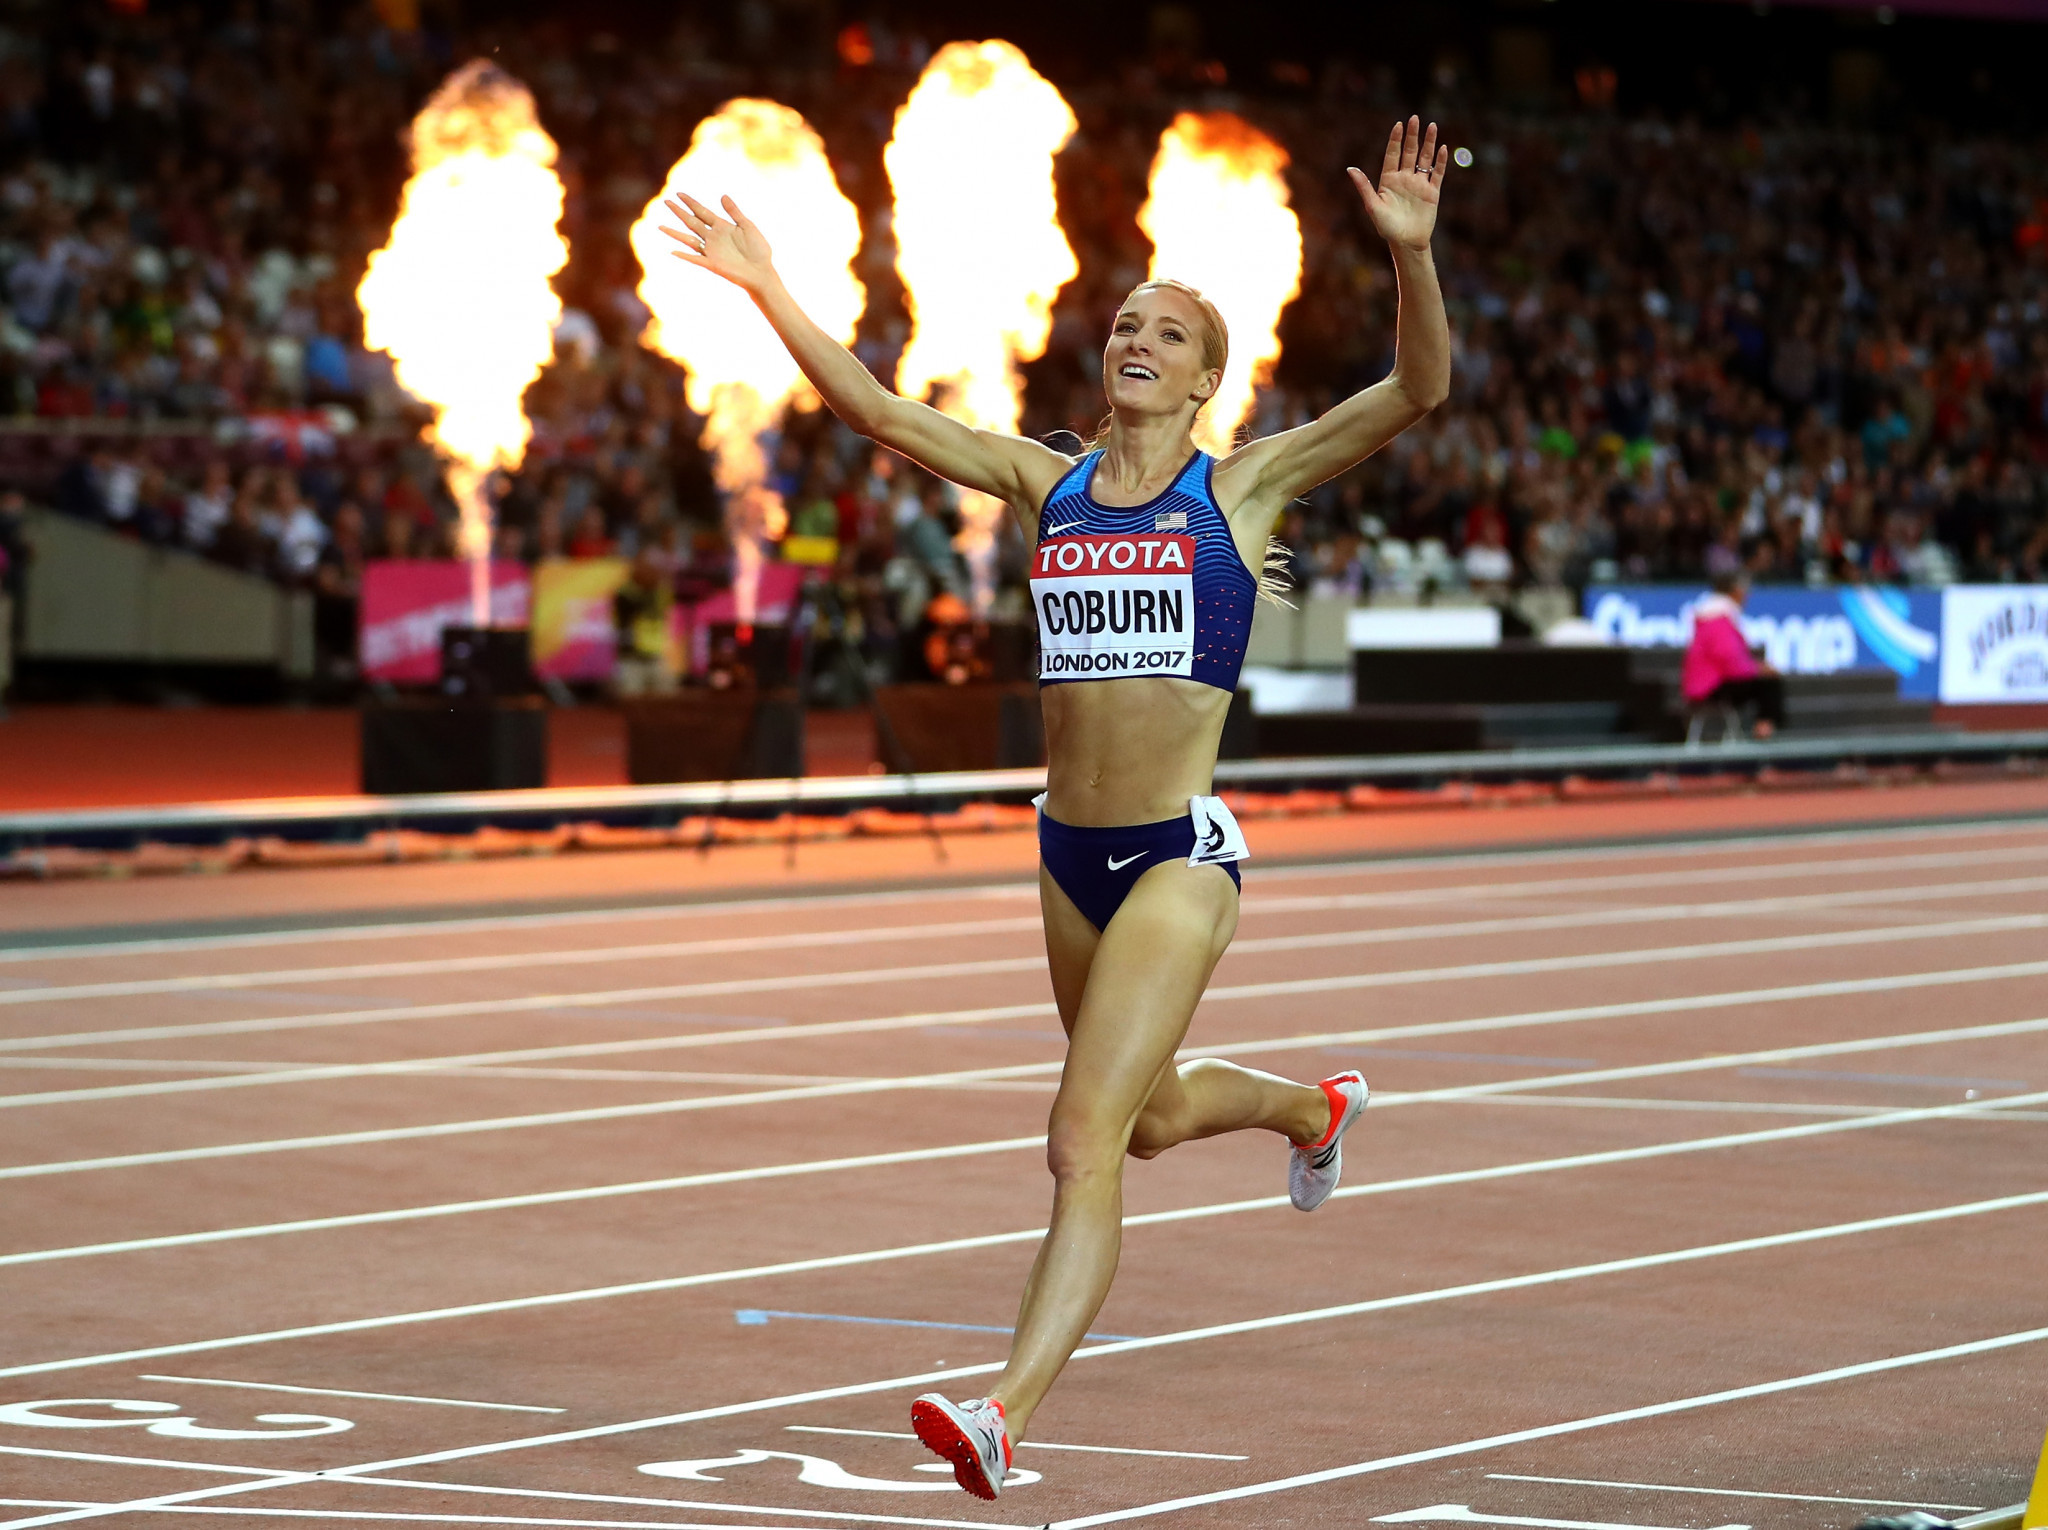 Emma Coburn won the 3,000m steeplechase title at the 2017 World Athletics Championships ©Getty Images